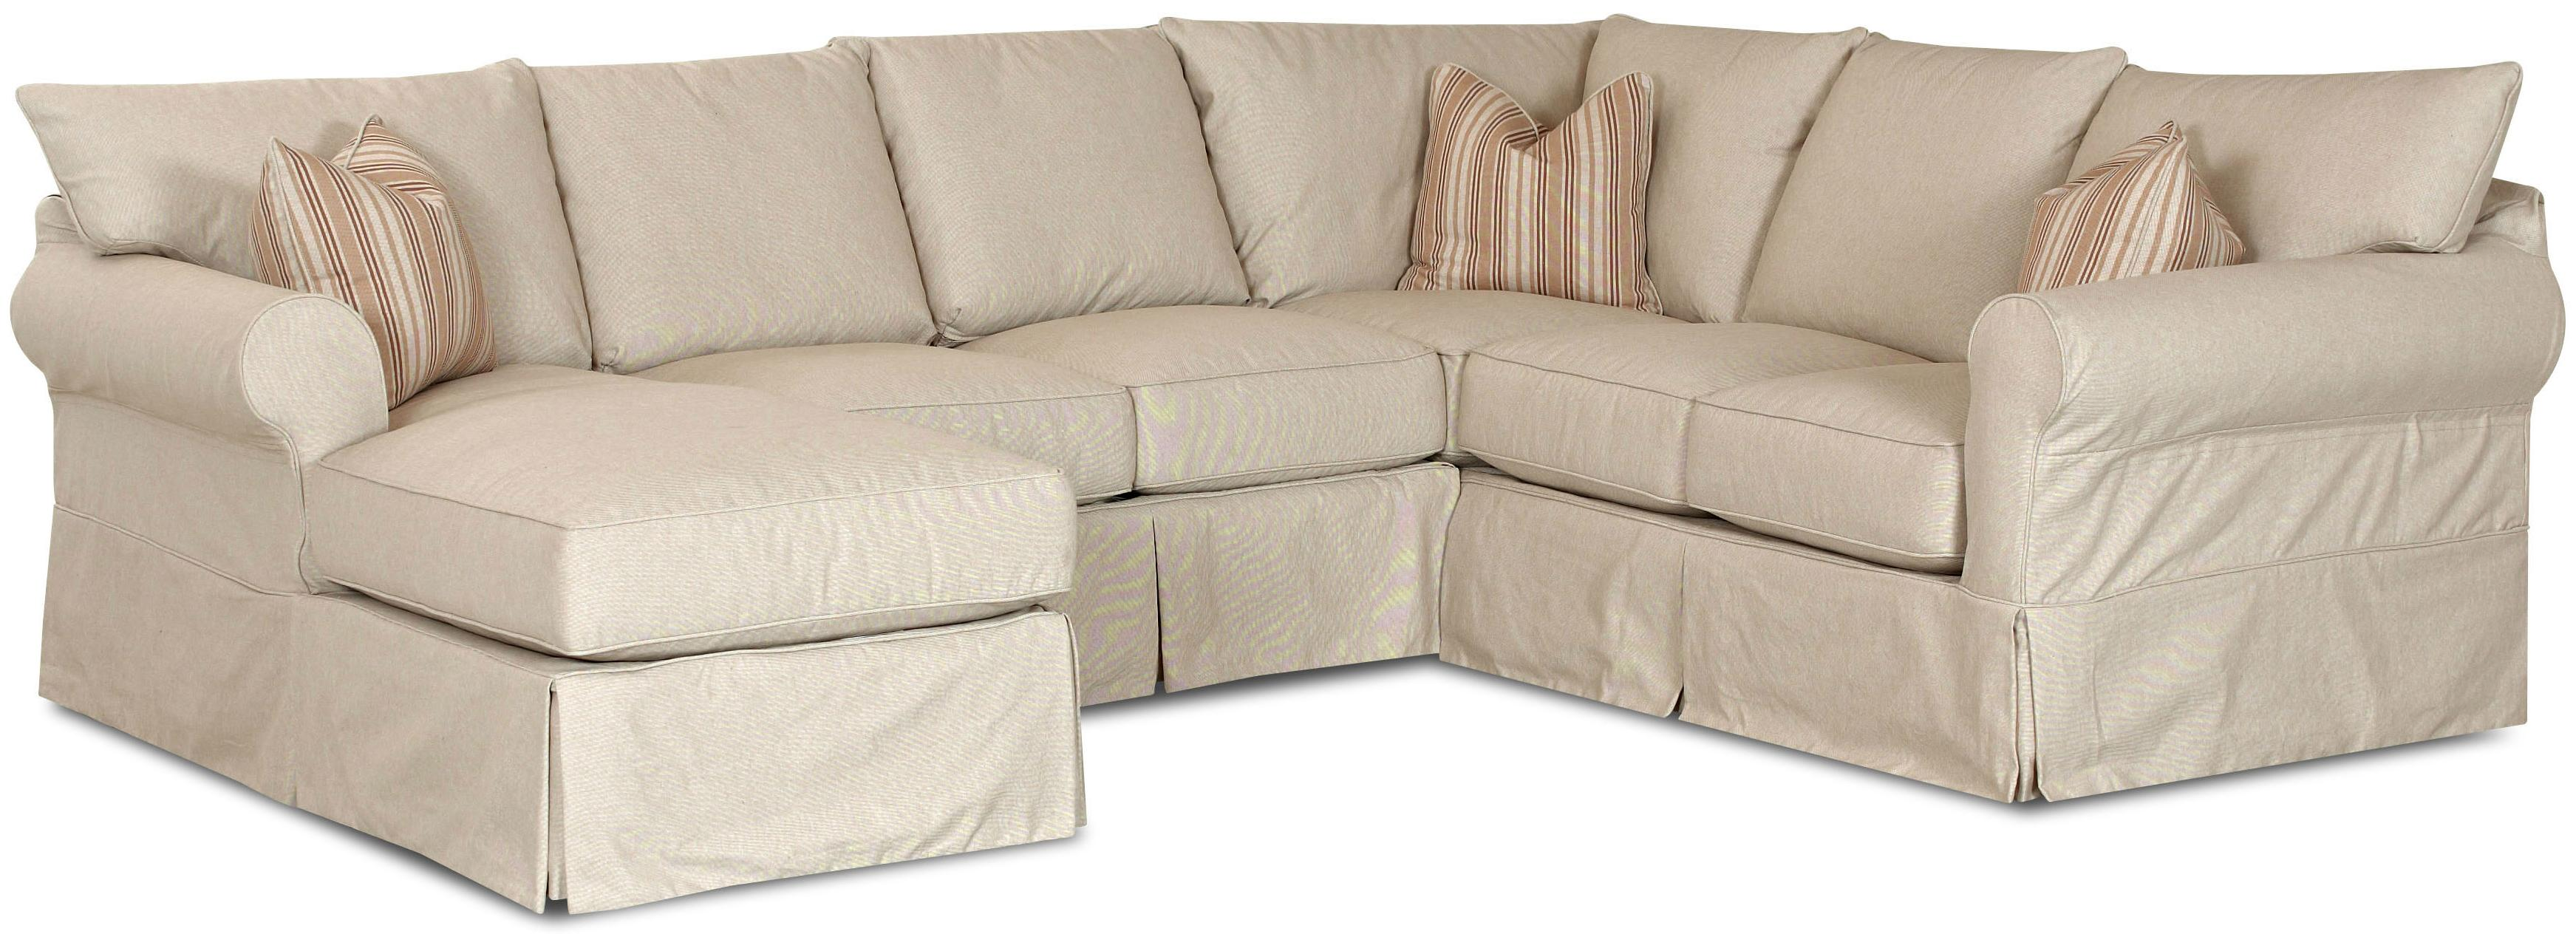 couch cover for sectional sofa